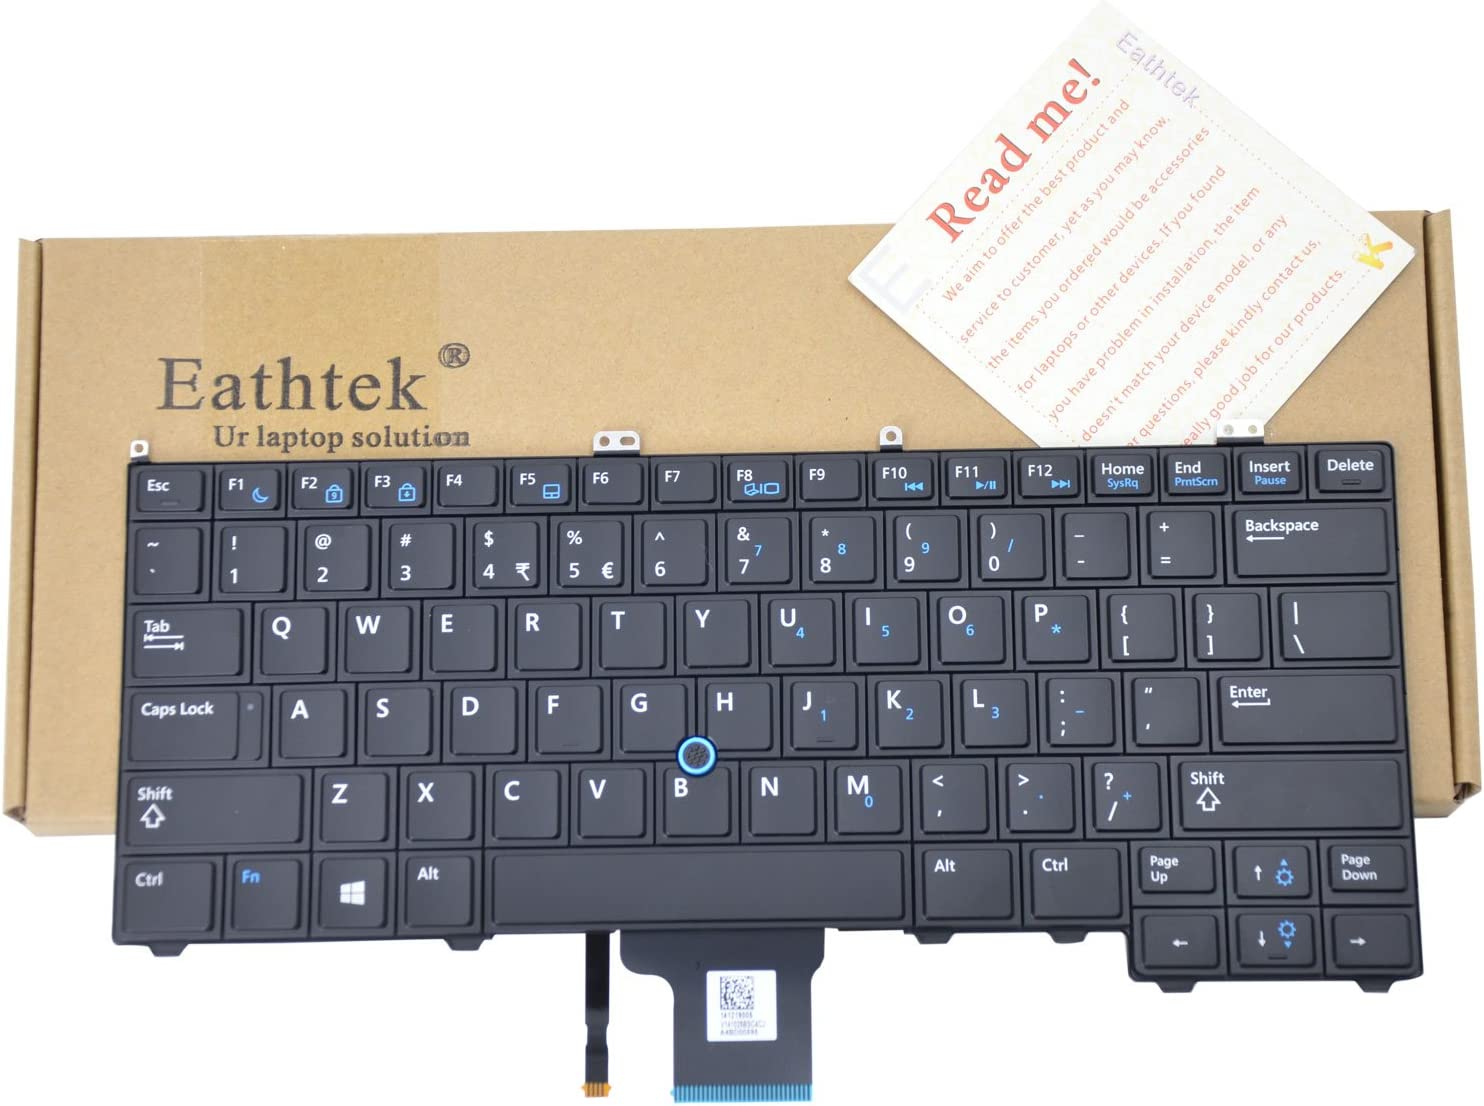 Eathtek Replacement Keyboard without Backlit for Dell Latitude E7440 series Black US Layout Compatible with part number 04G6VR PK130VN3A00 SG-60700-XUA SN7222